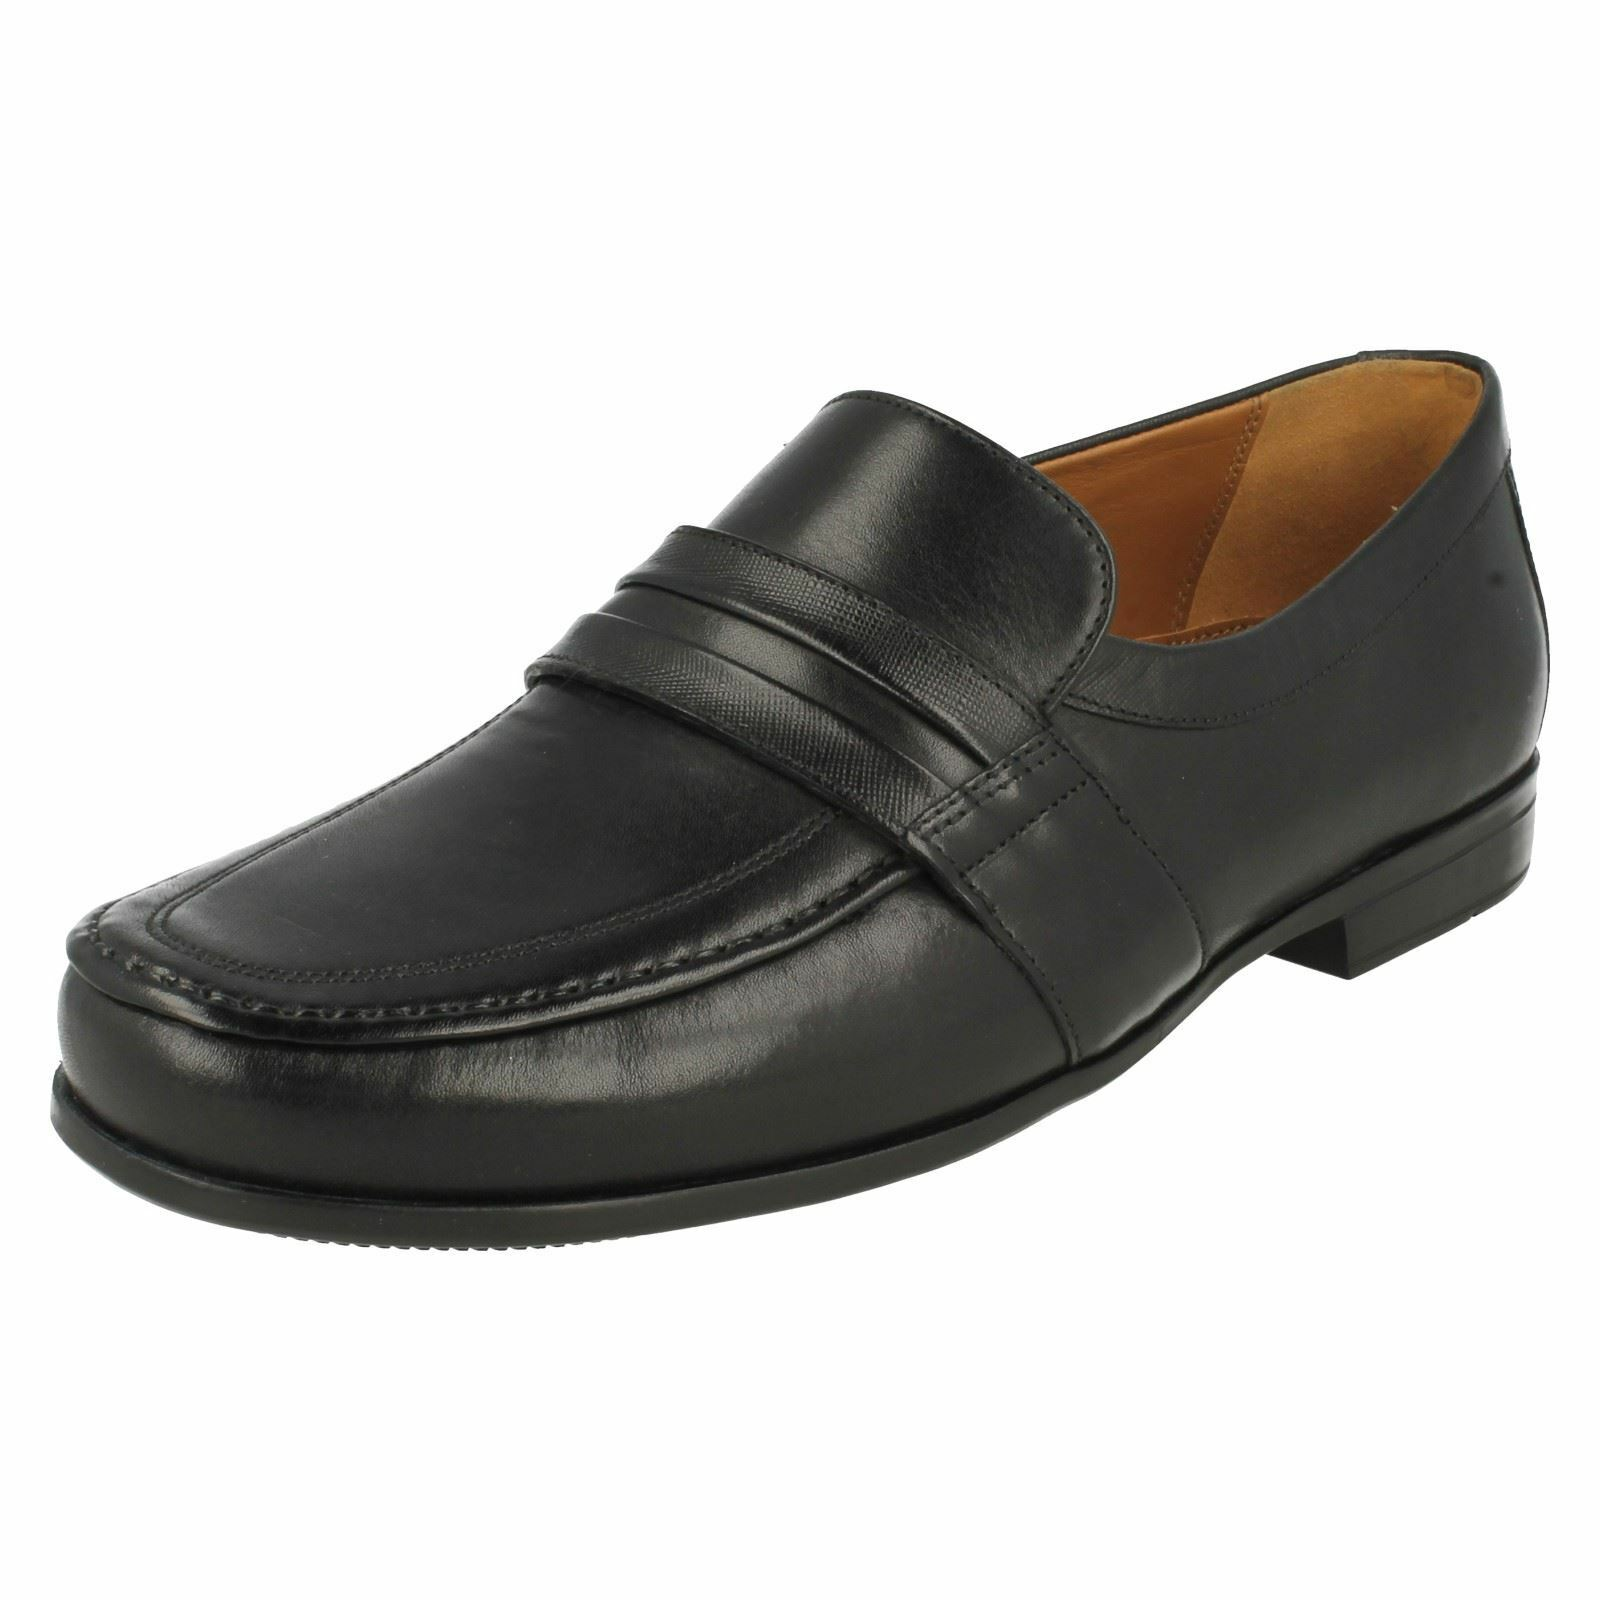 On Uomo Clarks Smart Slip On  'Claude Aston' 507981